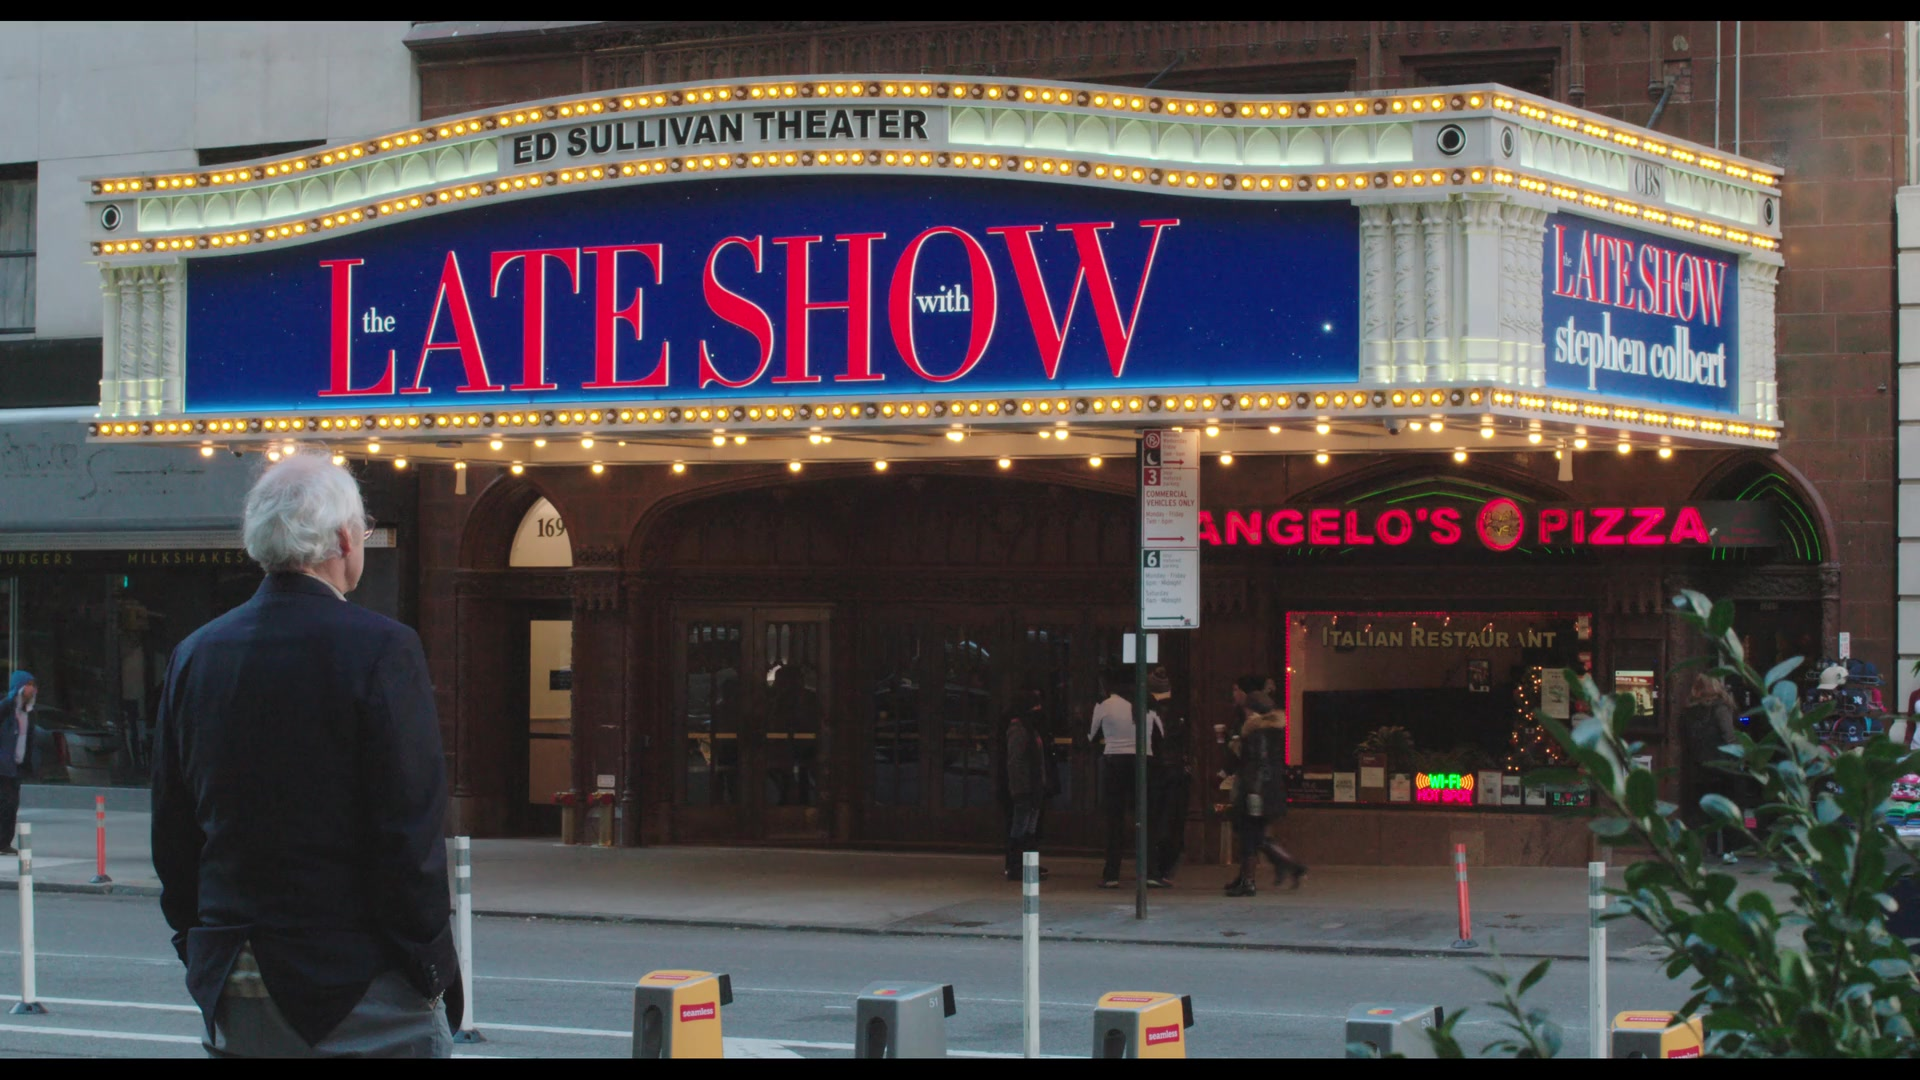 Ed Sullivan Theater And The Late Show With Stephen Colbert In The